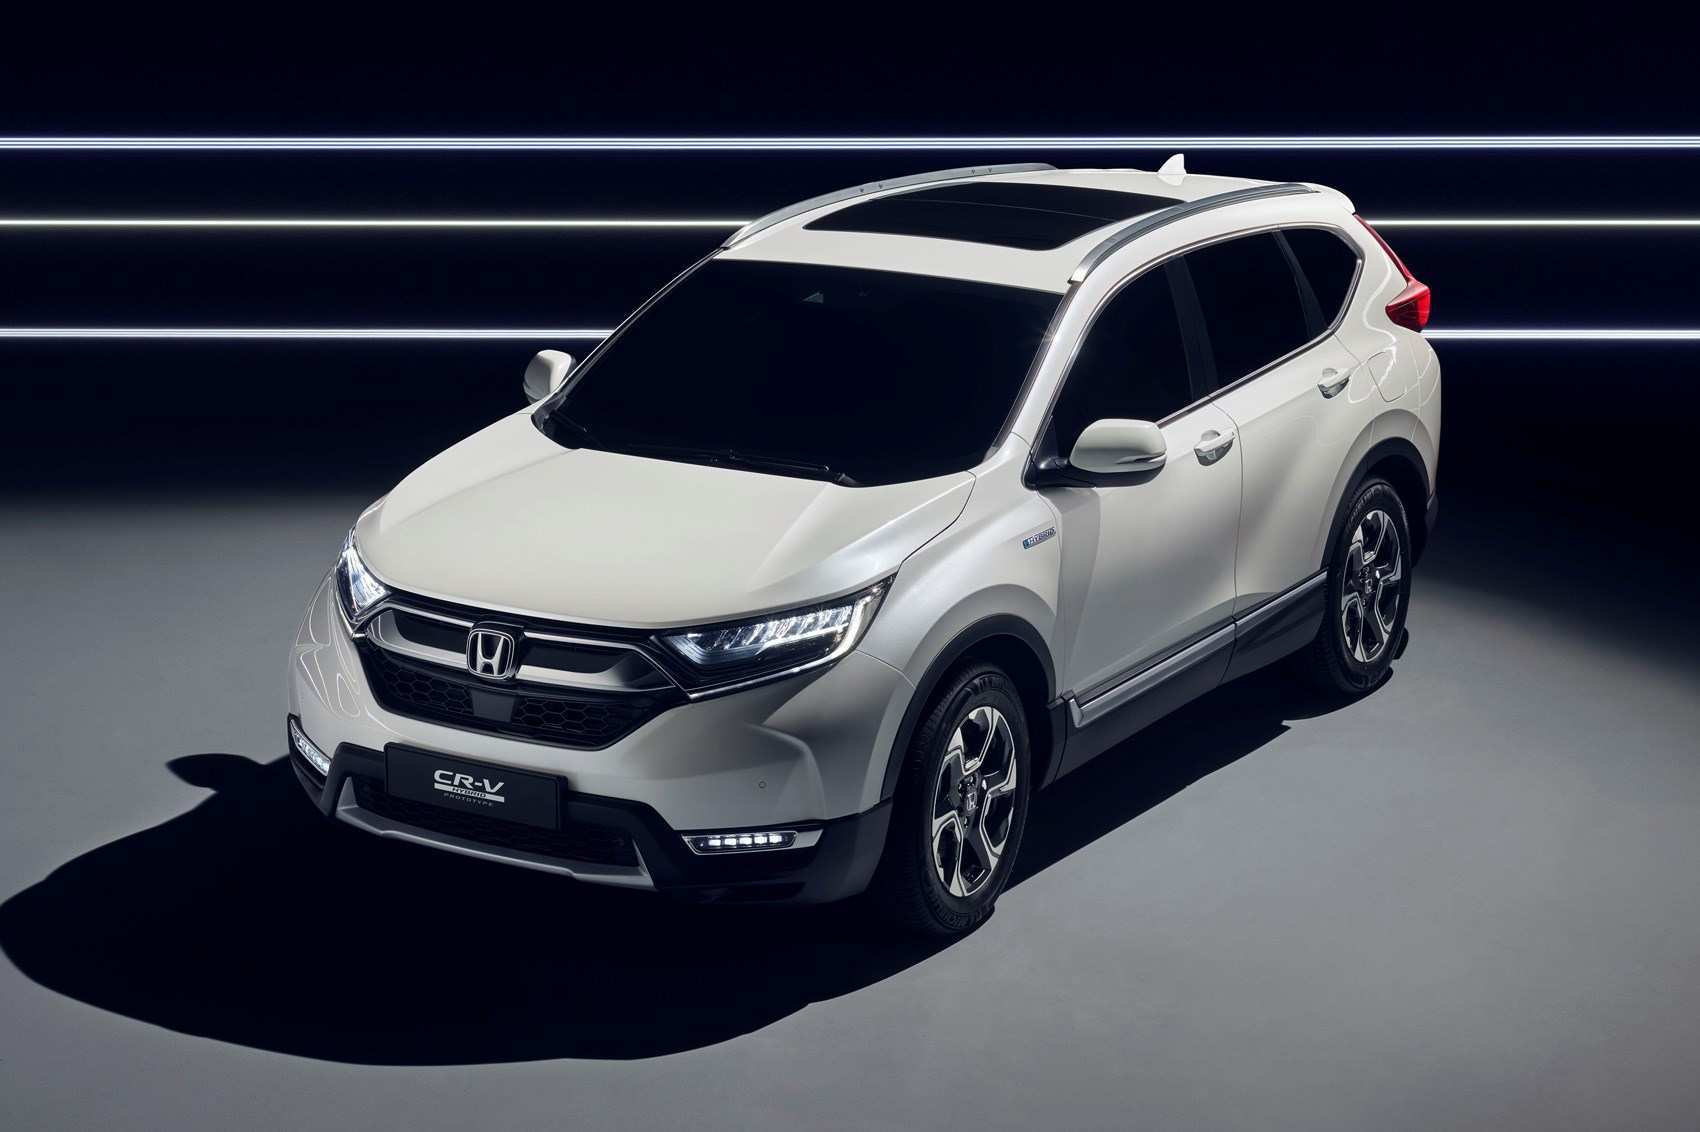 86 New Honda Crv 2020 Model Review